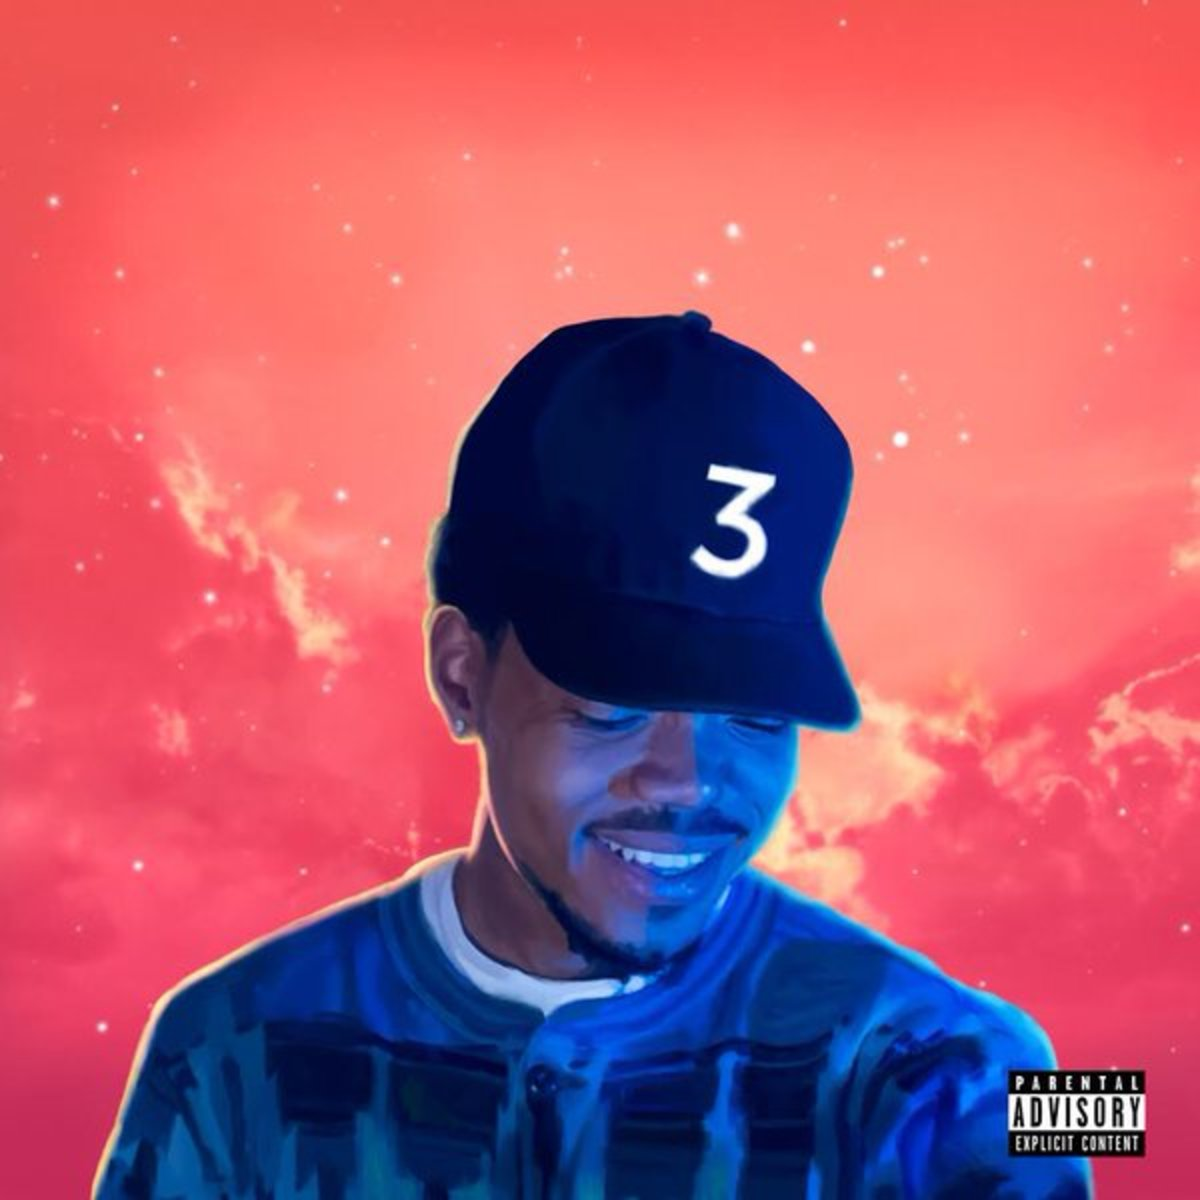 Chance The Rapper S Album Art Uncovers The Man Behind The Artist